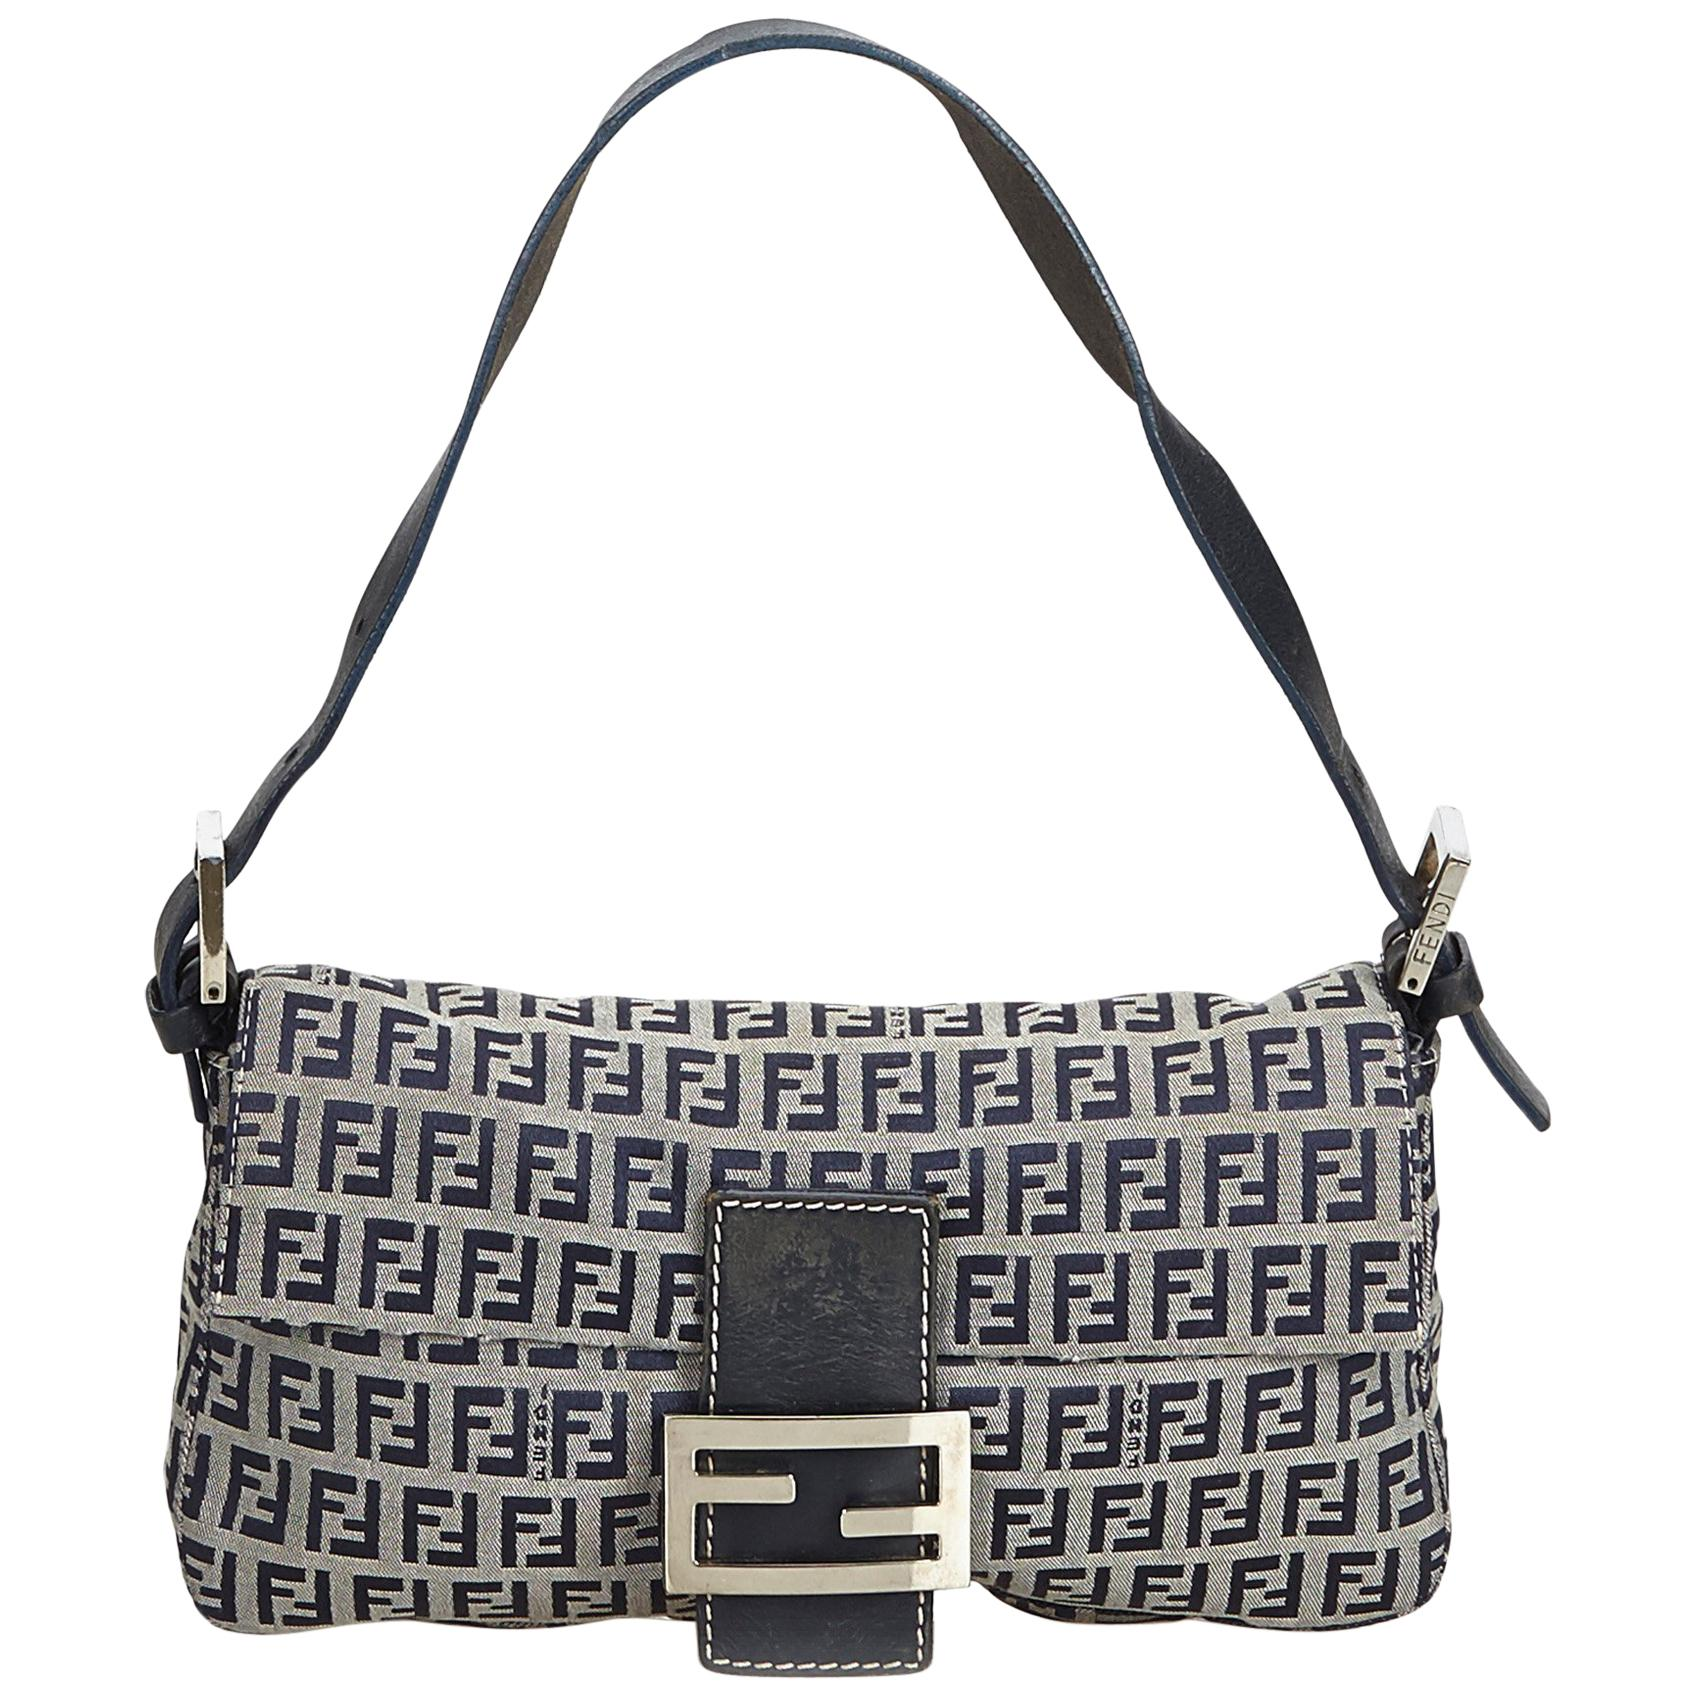 ec5f7862eeac Vintage Fendi Handbags and Purses - 986 For Sale at 1stdibs